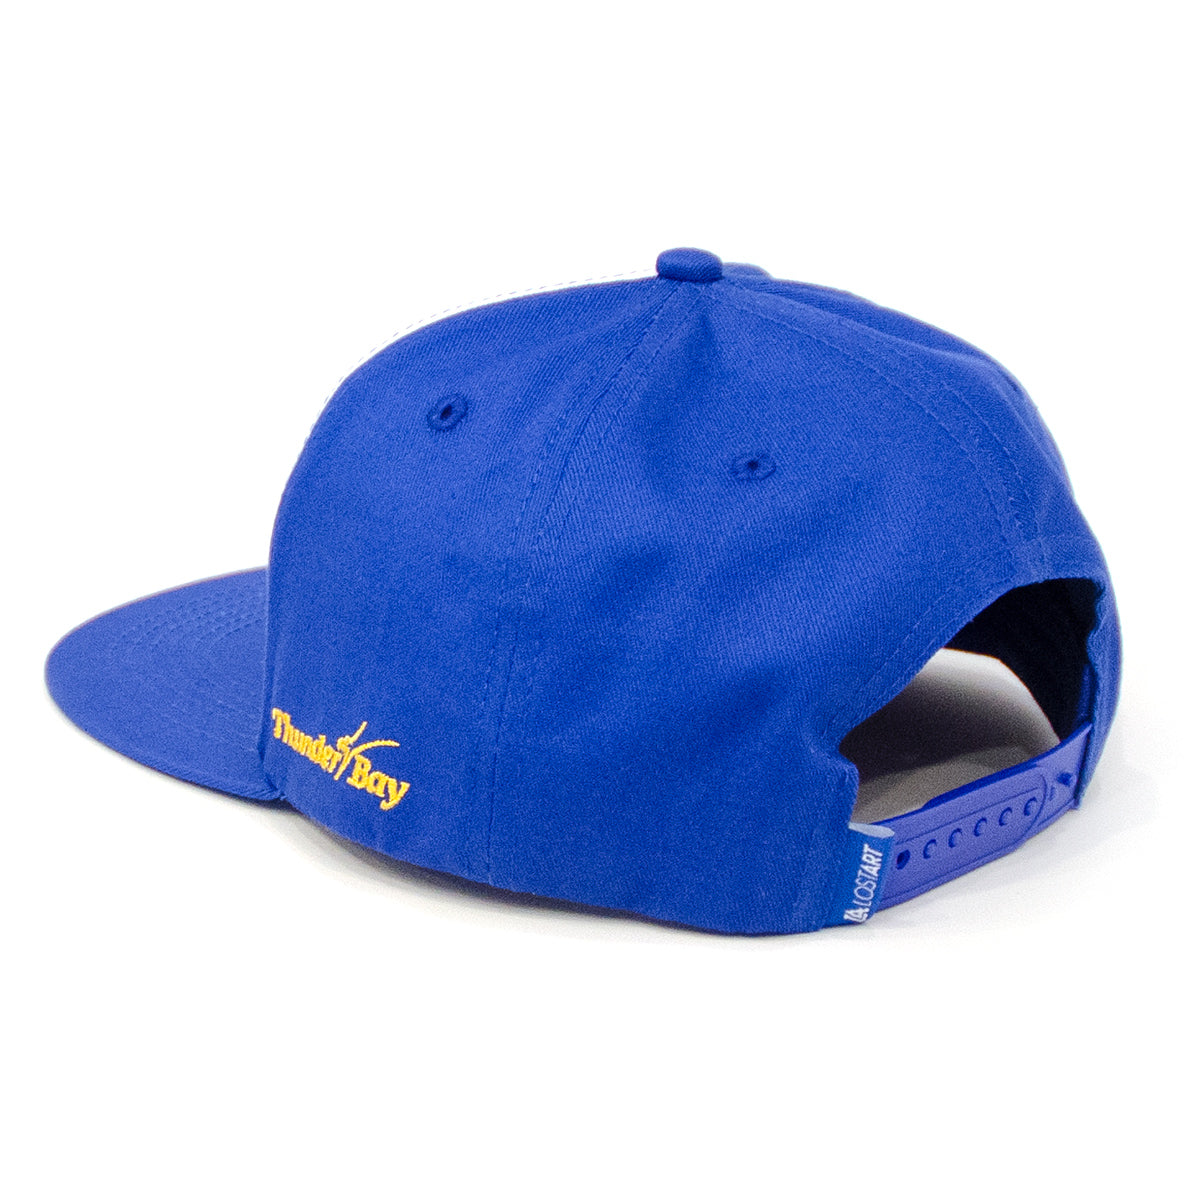 Lost Art Canada - blue one city snapback hat back view